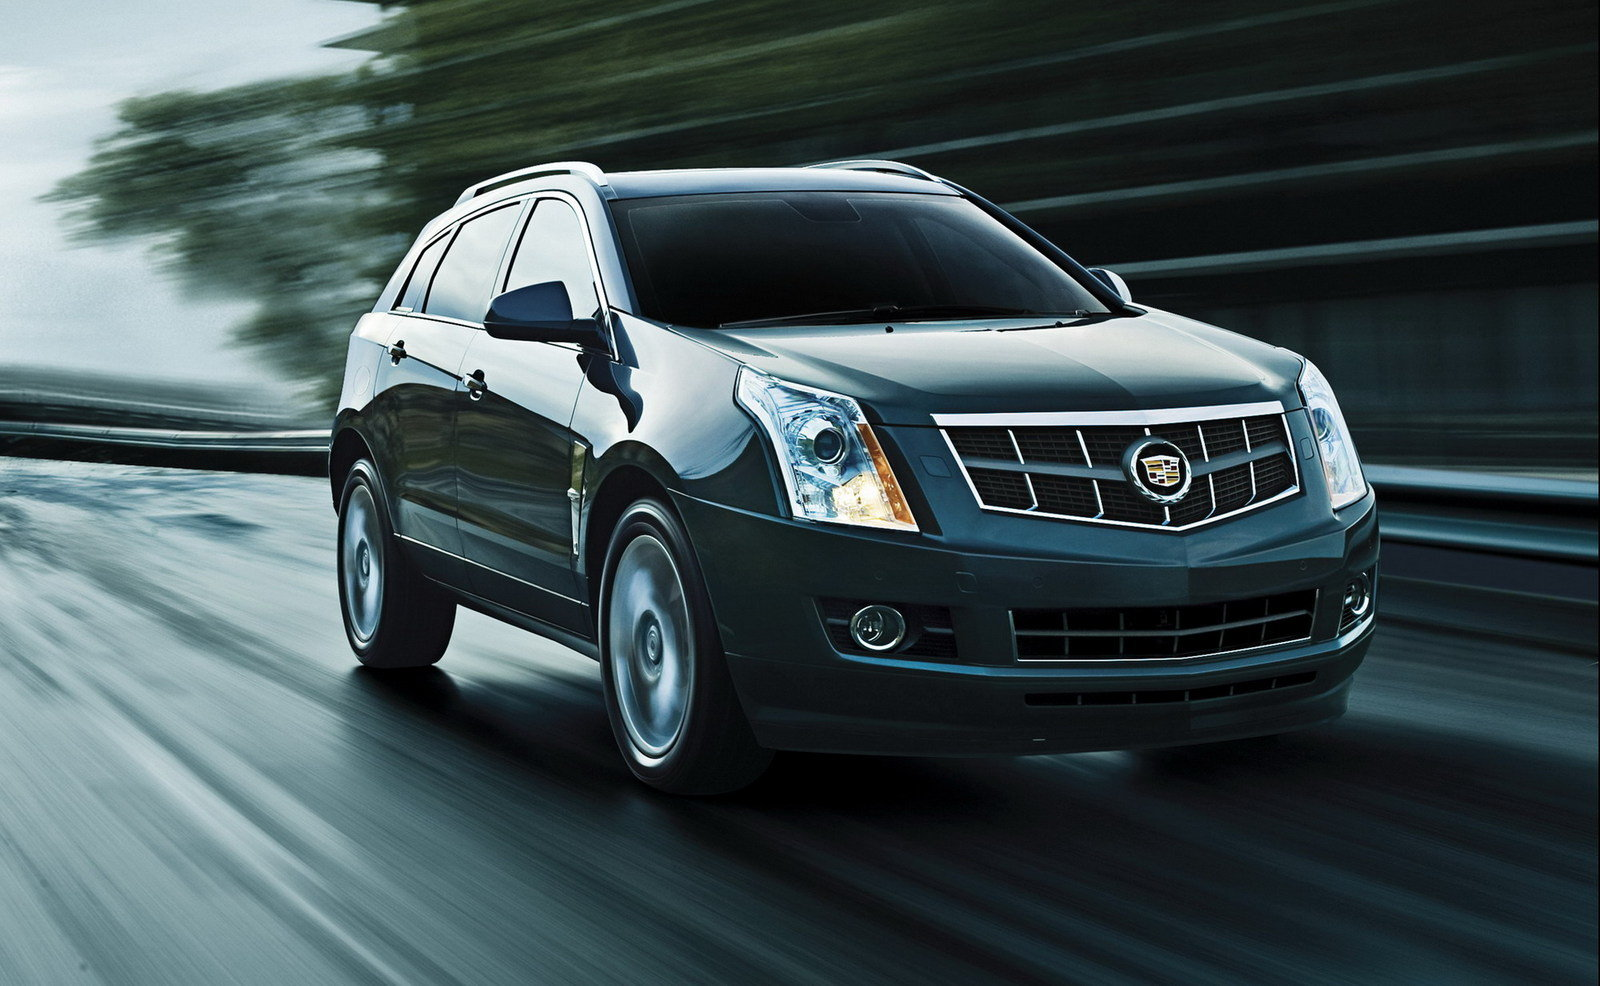 2010 2012 cadillac srx picture 398793 car review top speed. Black Bedroom Furniture Sets. Home Design Ideas